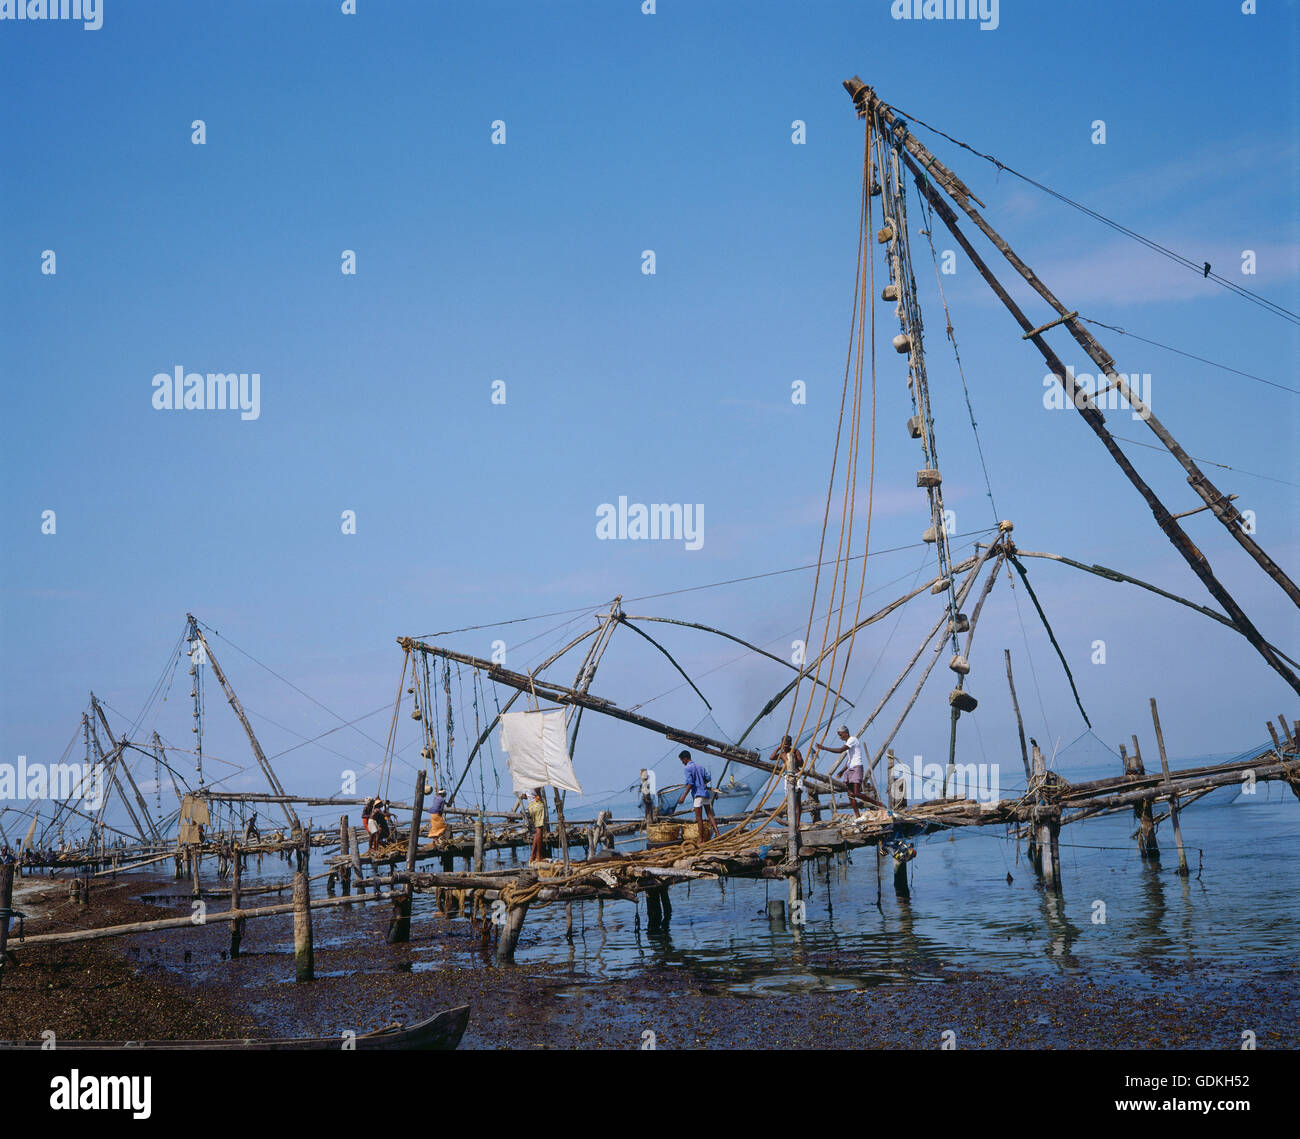 geography / travel, India, Kerala, Keralam, landscapes, fisherman on the isle Cochin, - Stock Image